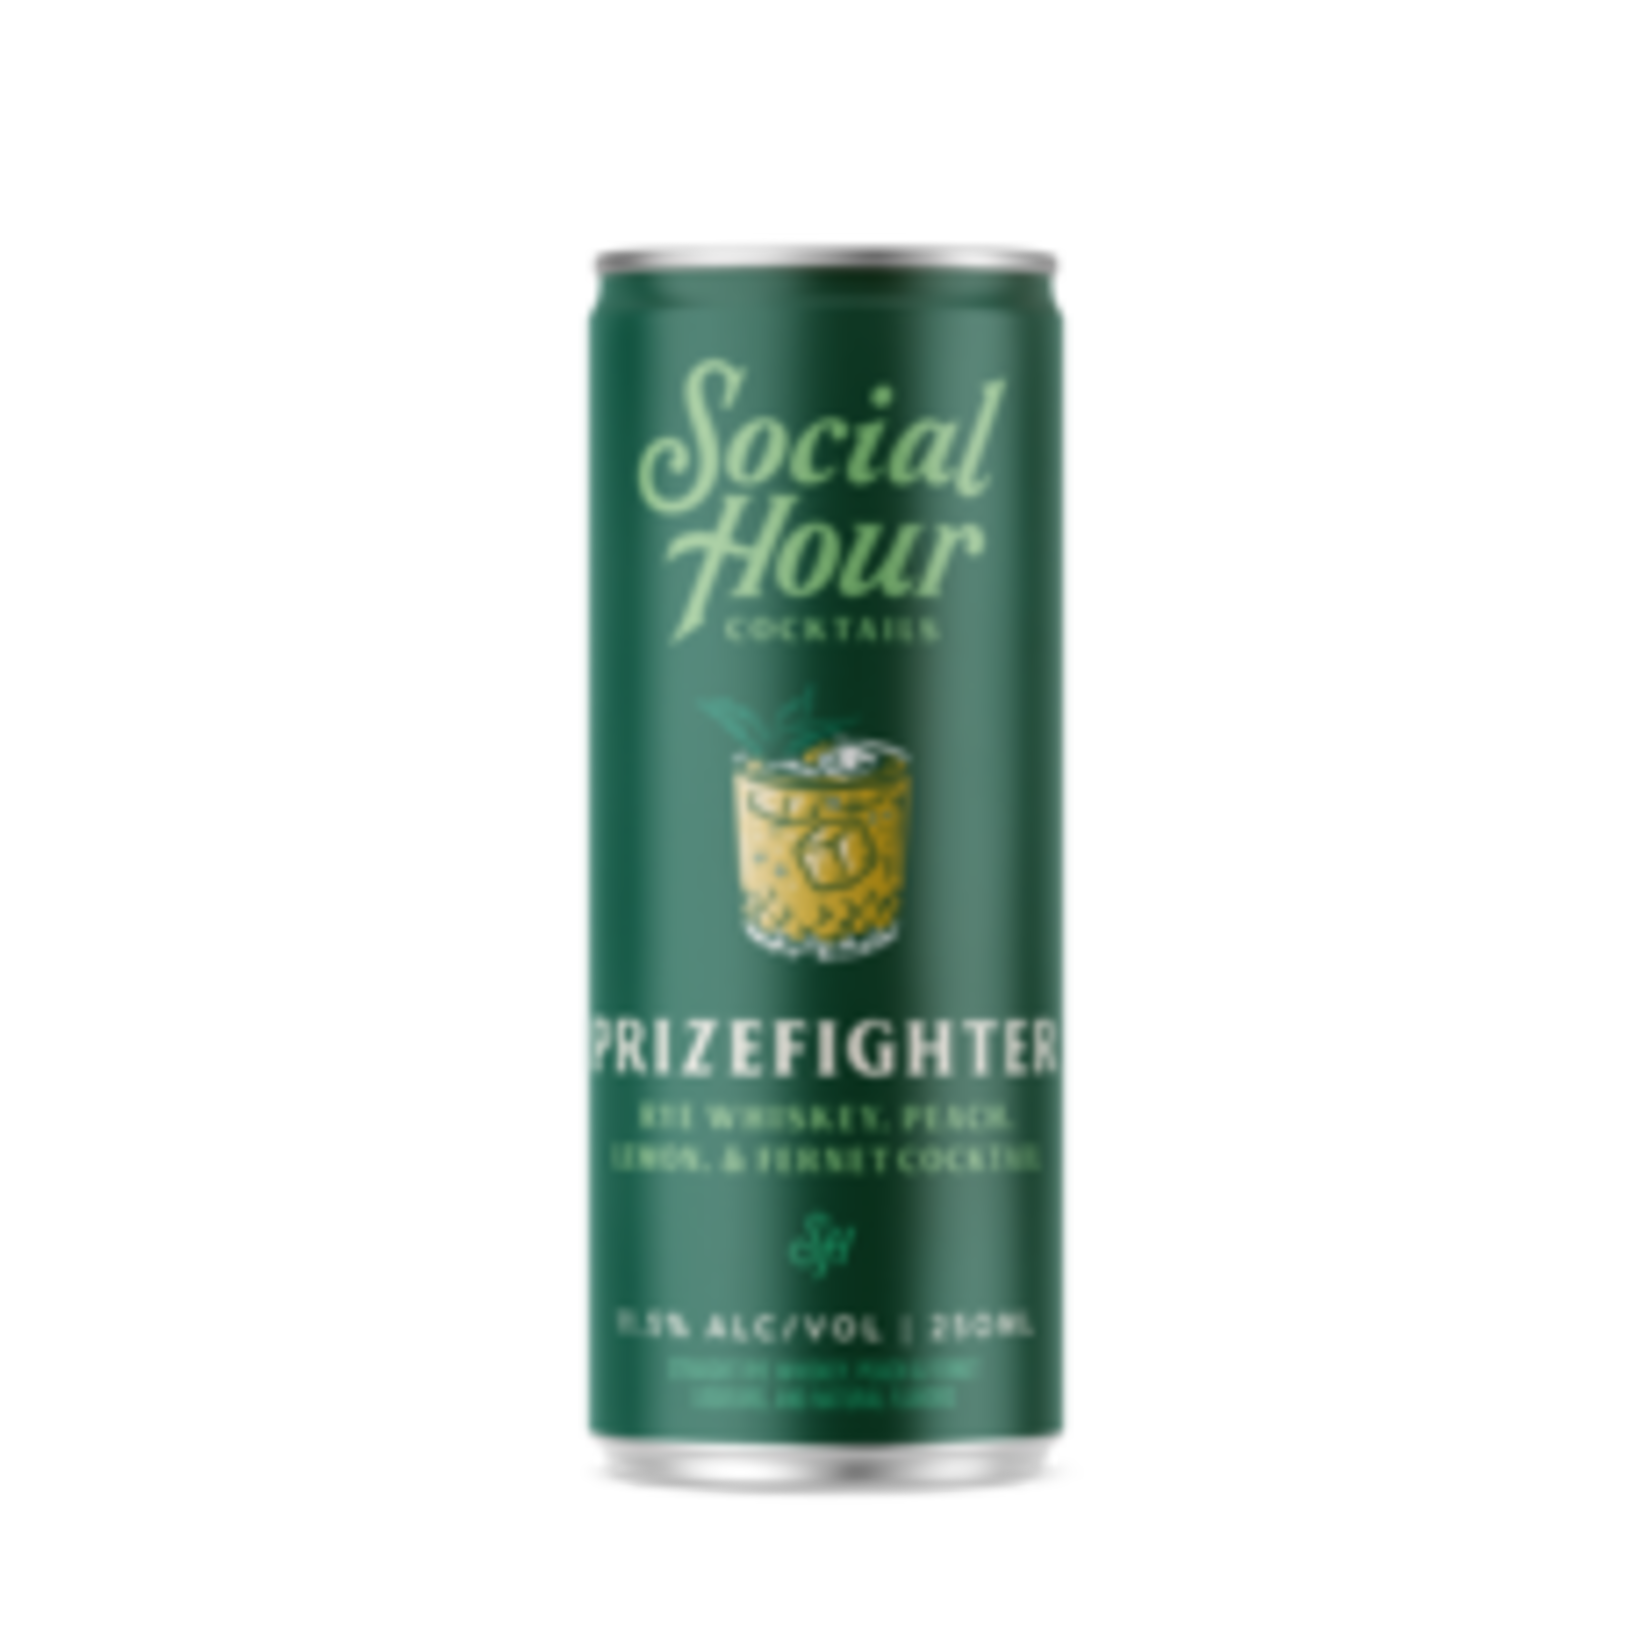 Spirits Social Hour Cocktails Brooklyn Craft Prizefighter Can 250ml